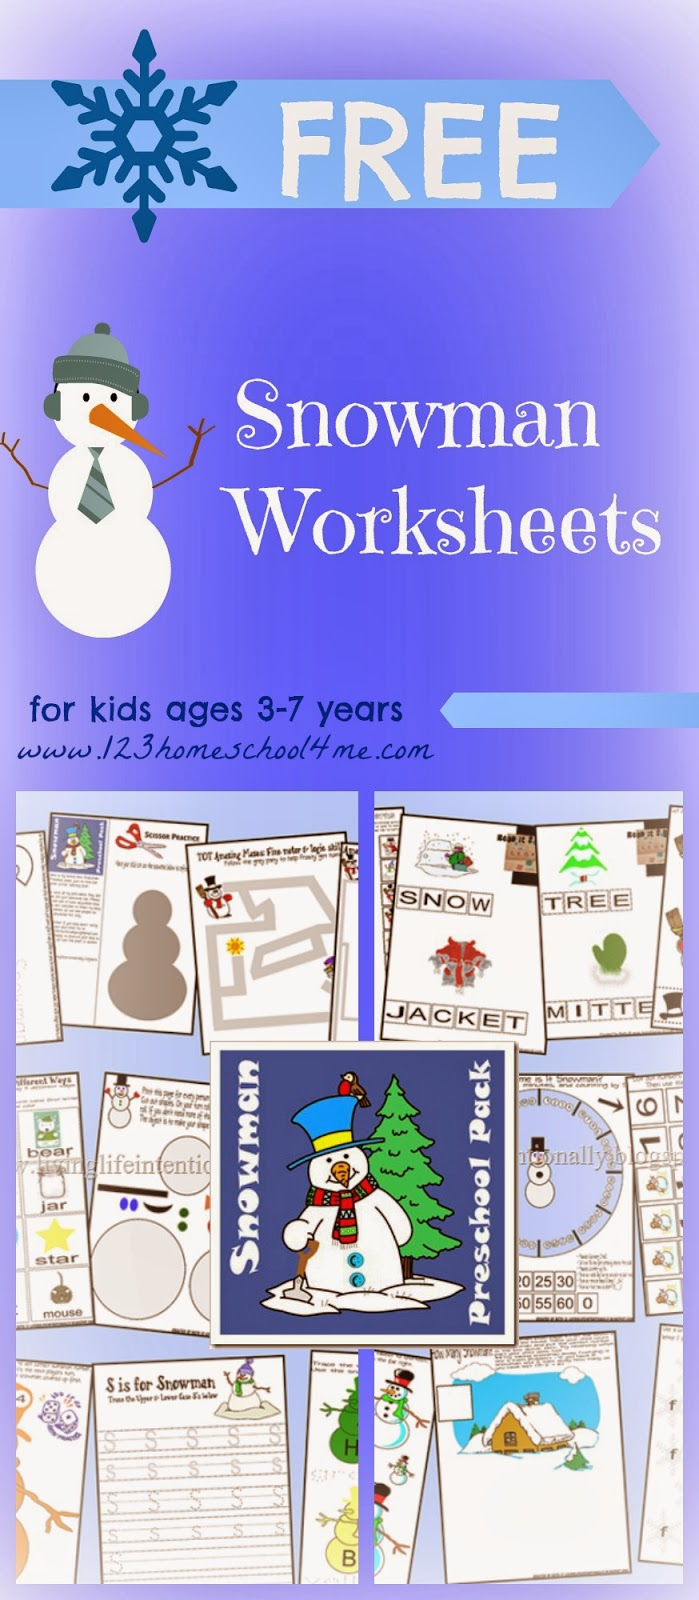 FREE Snowman Worksheets